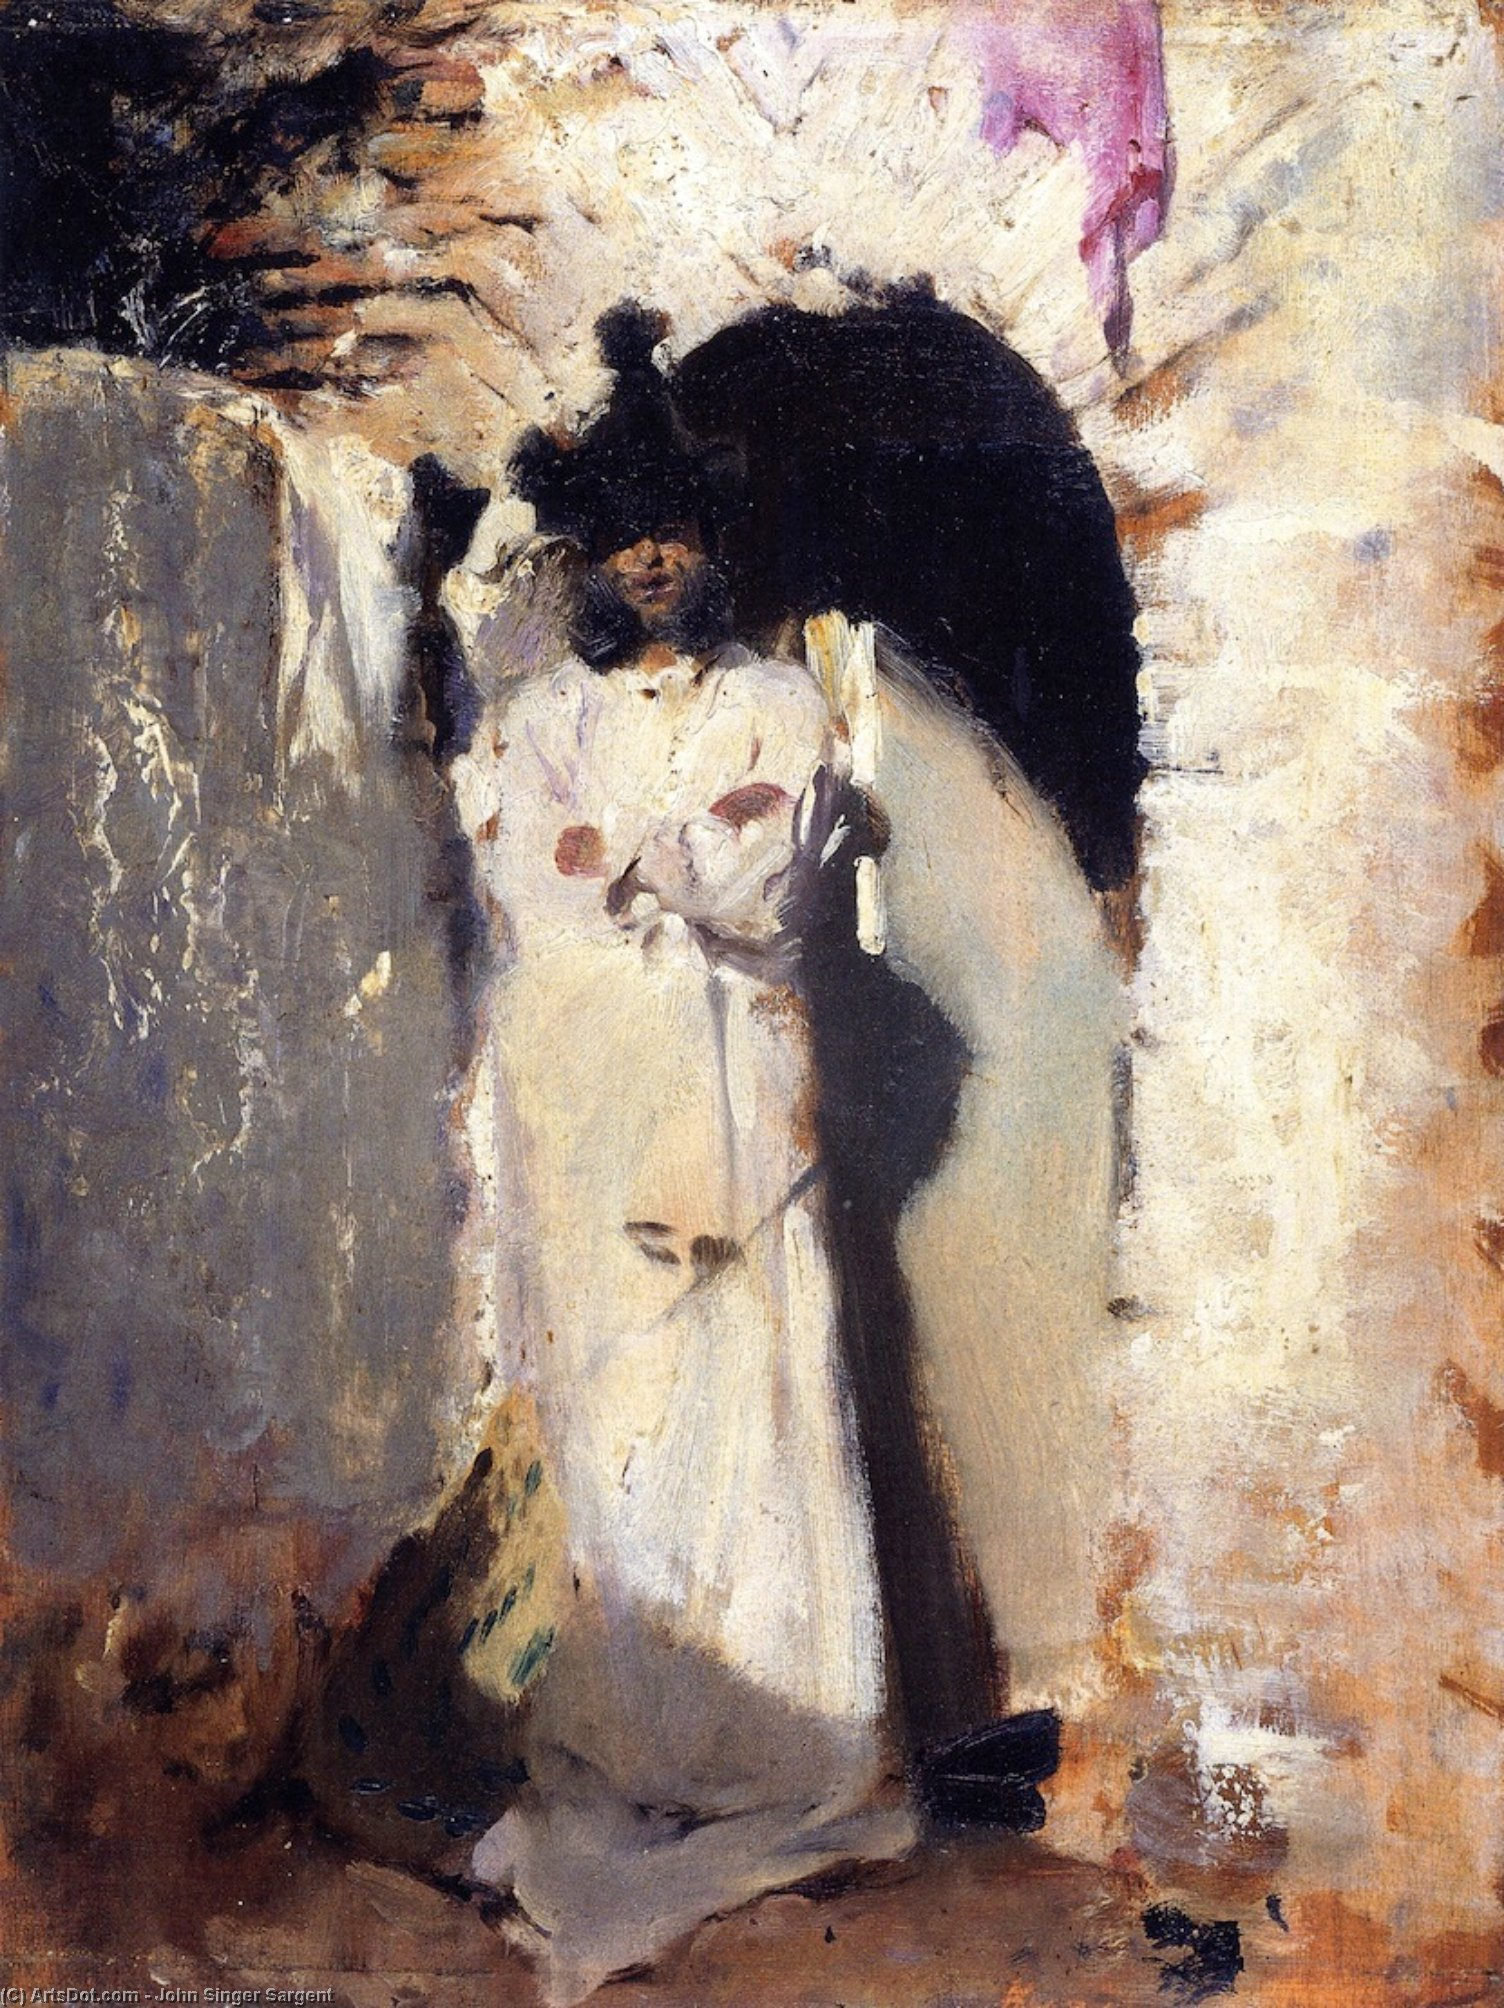 Wikioo.org - The Encyclopedia of Fine Arts - Painting, Artwork by John Singer Sargent - A Spanish Figure (also known as Landscape with Hills)